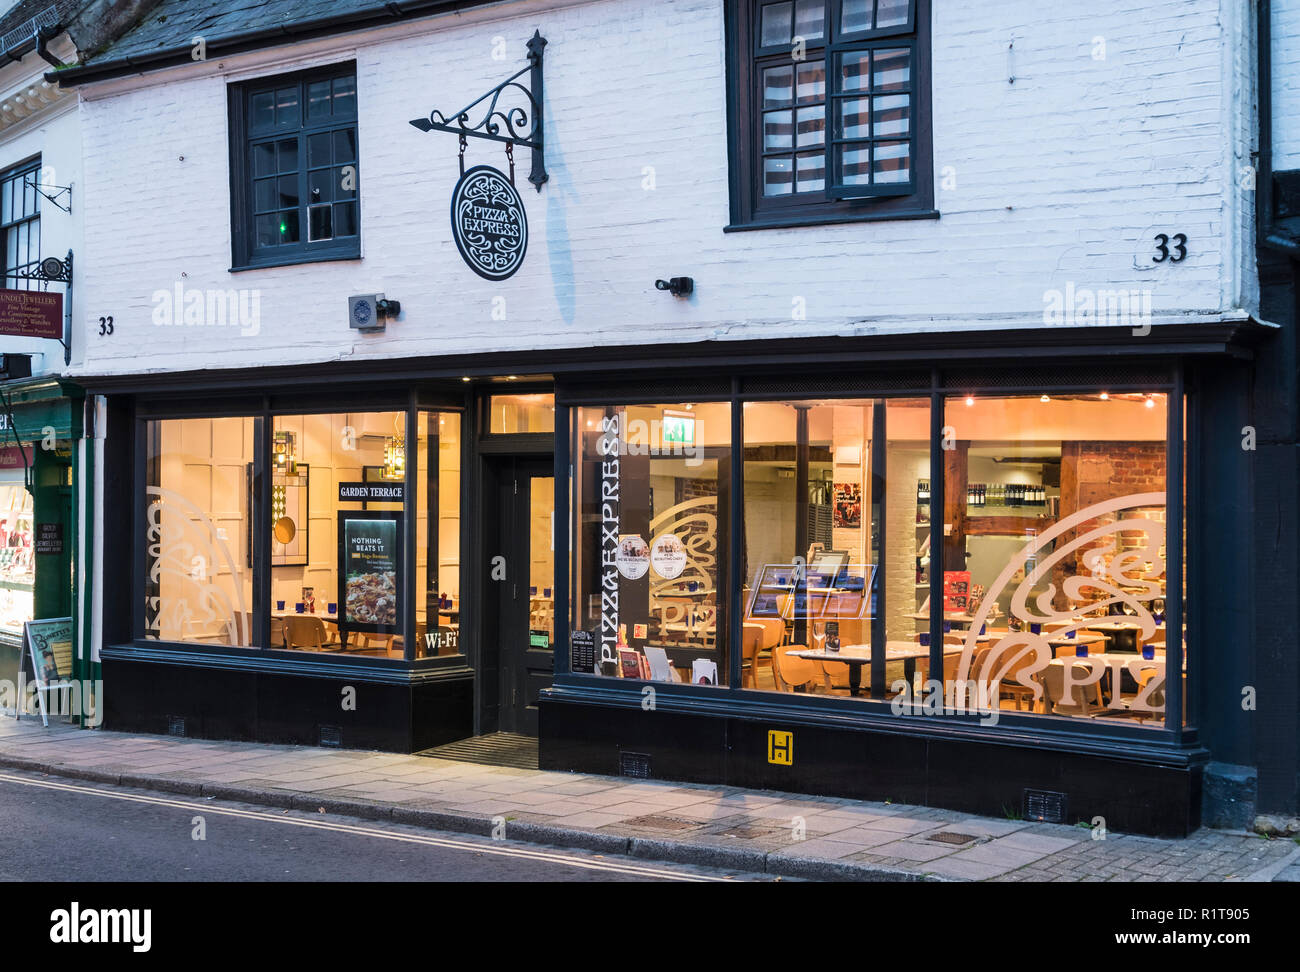 Uk Pizza Stock Photos Uk Pizza Stock Images Alamy